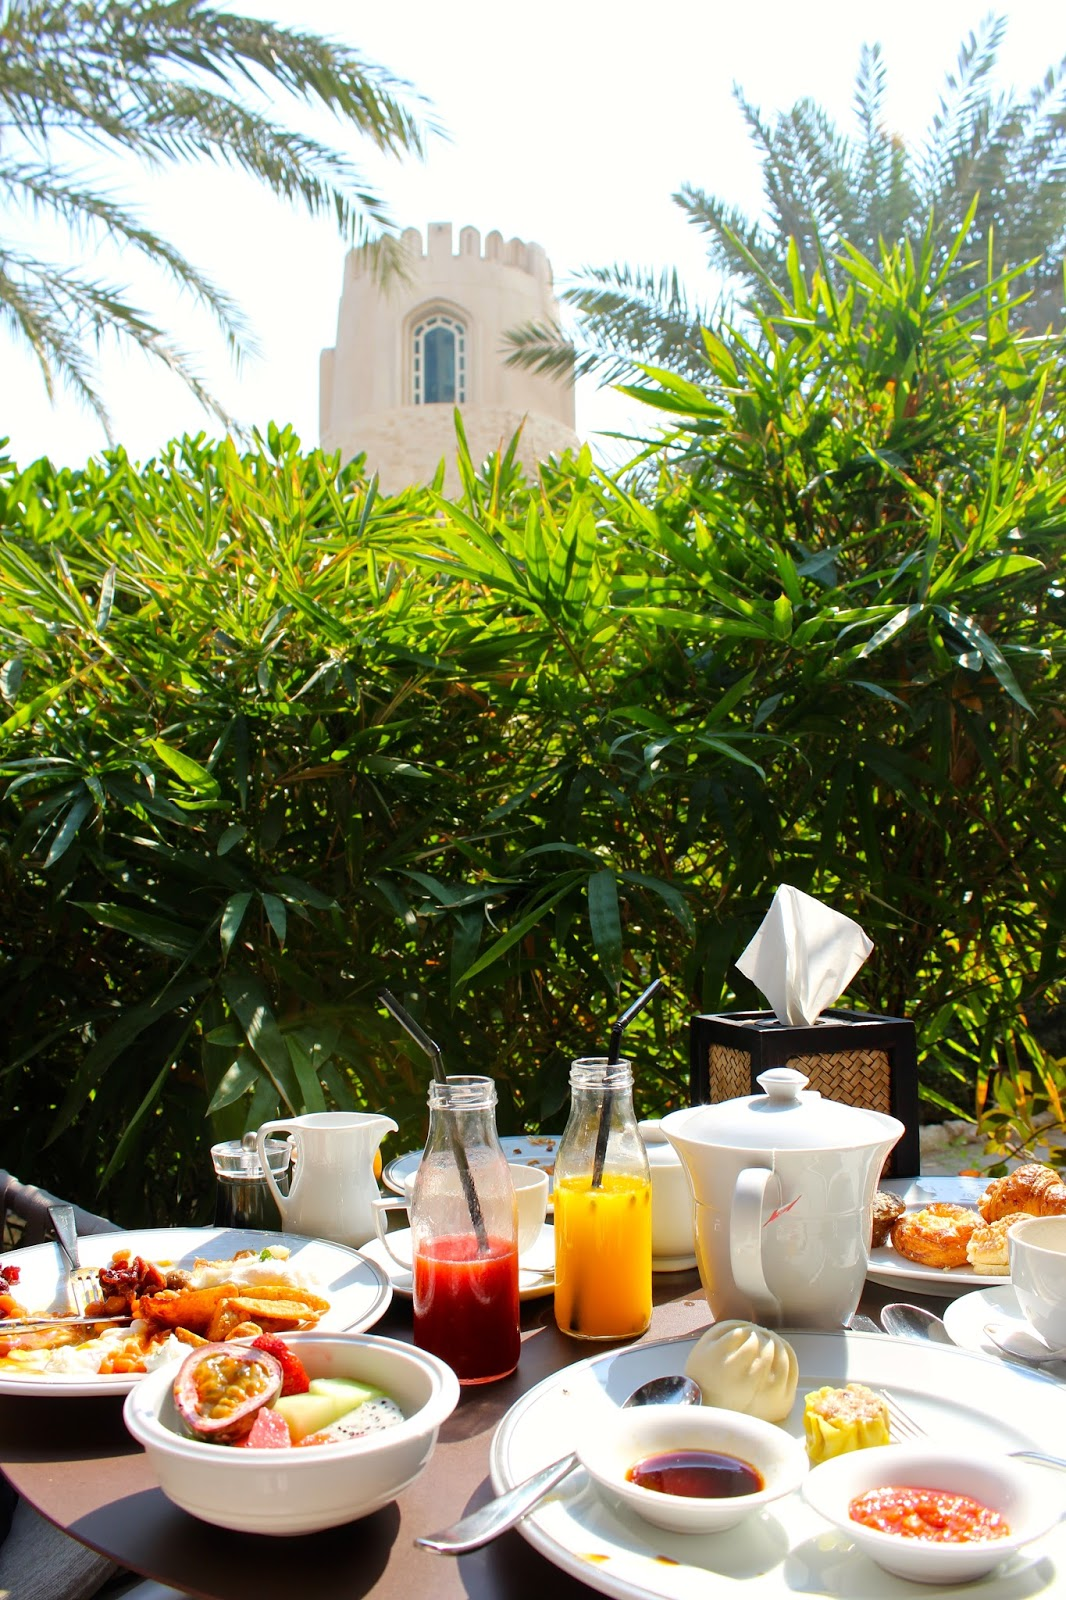 A Luxurious Family Stay At The Four Seasons Hotel, Doha